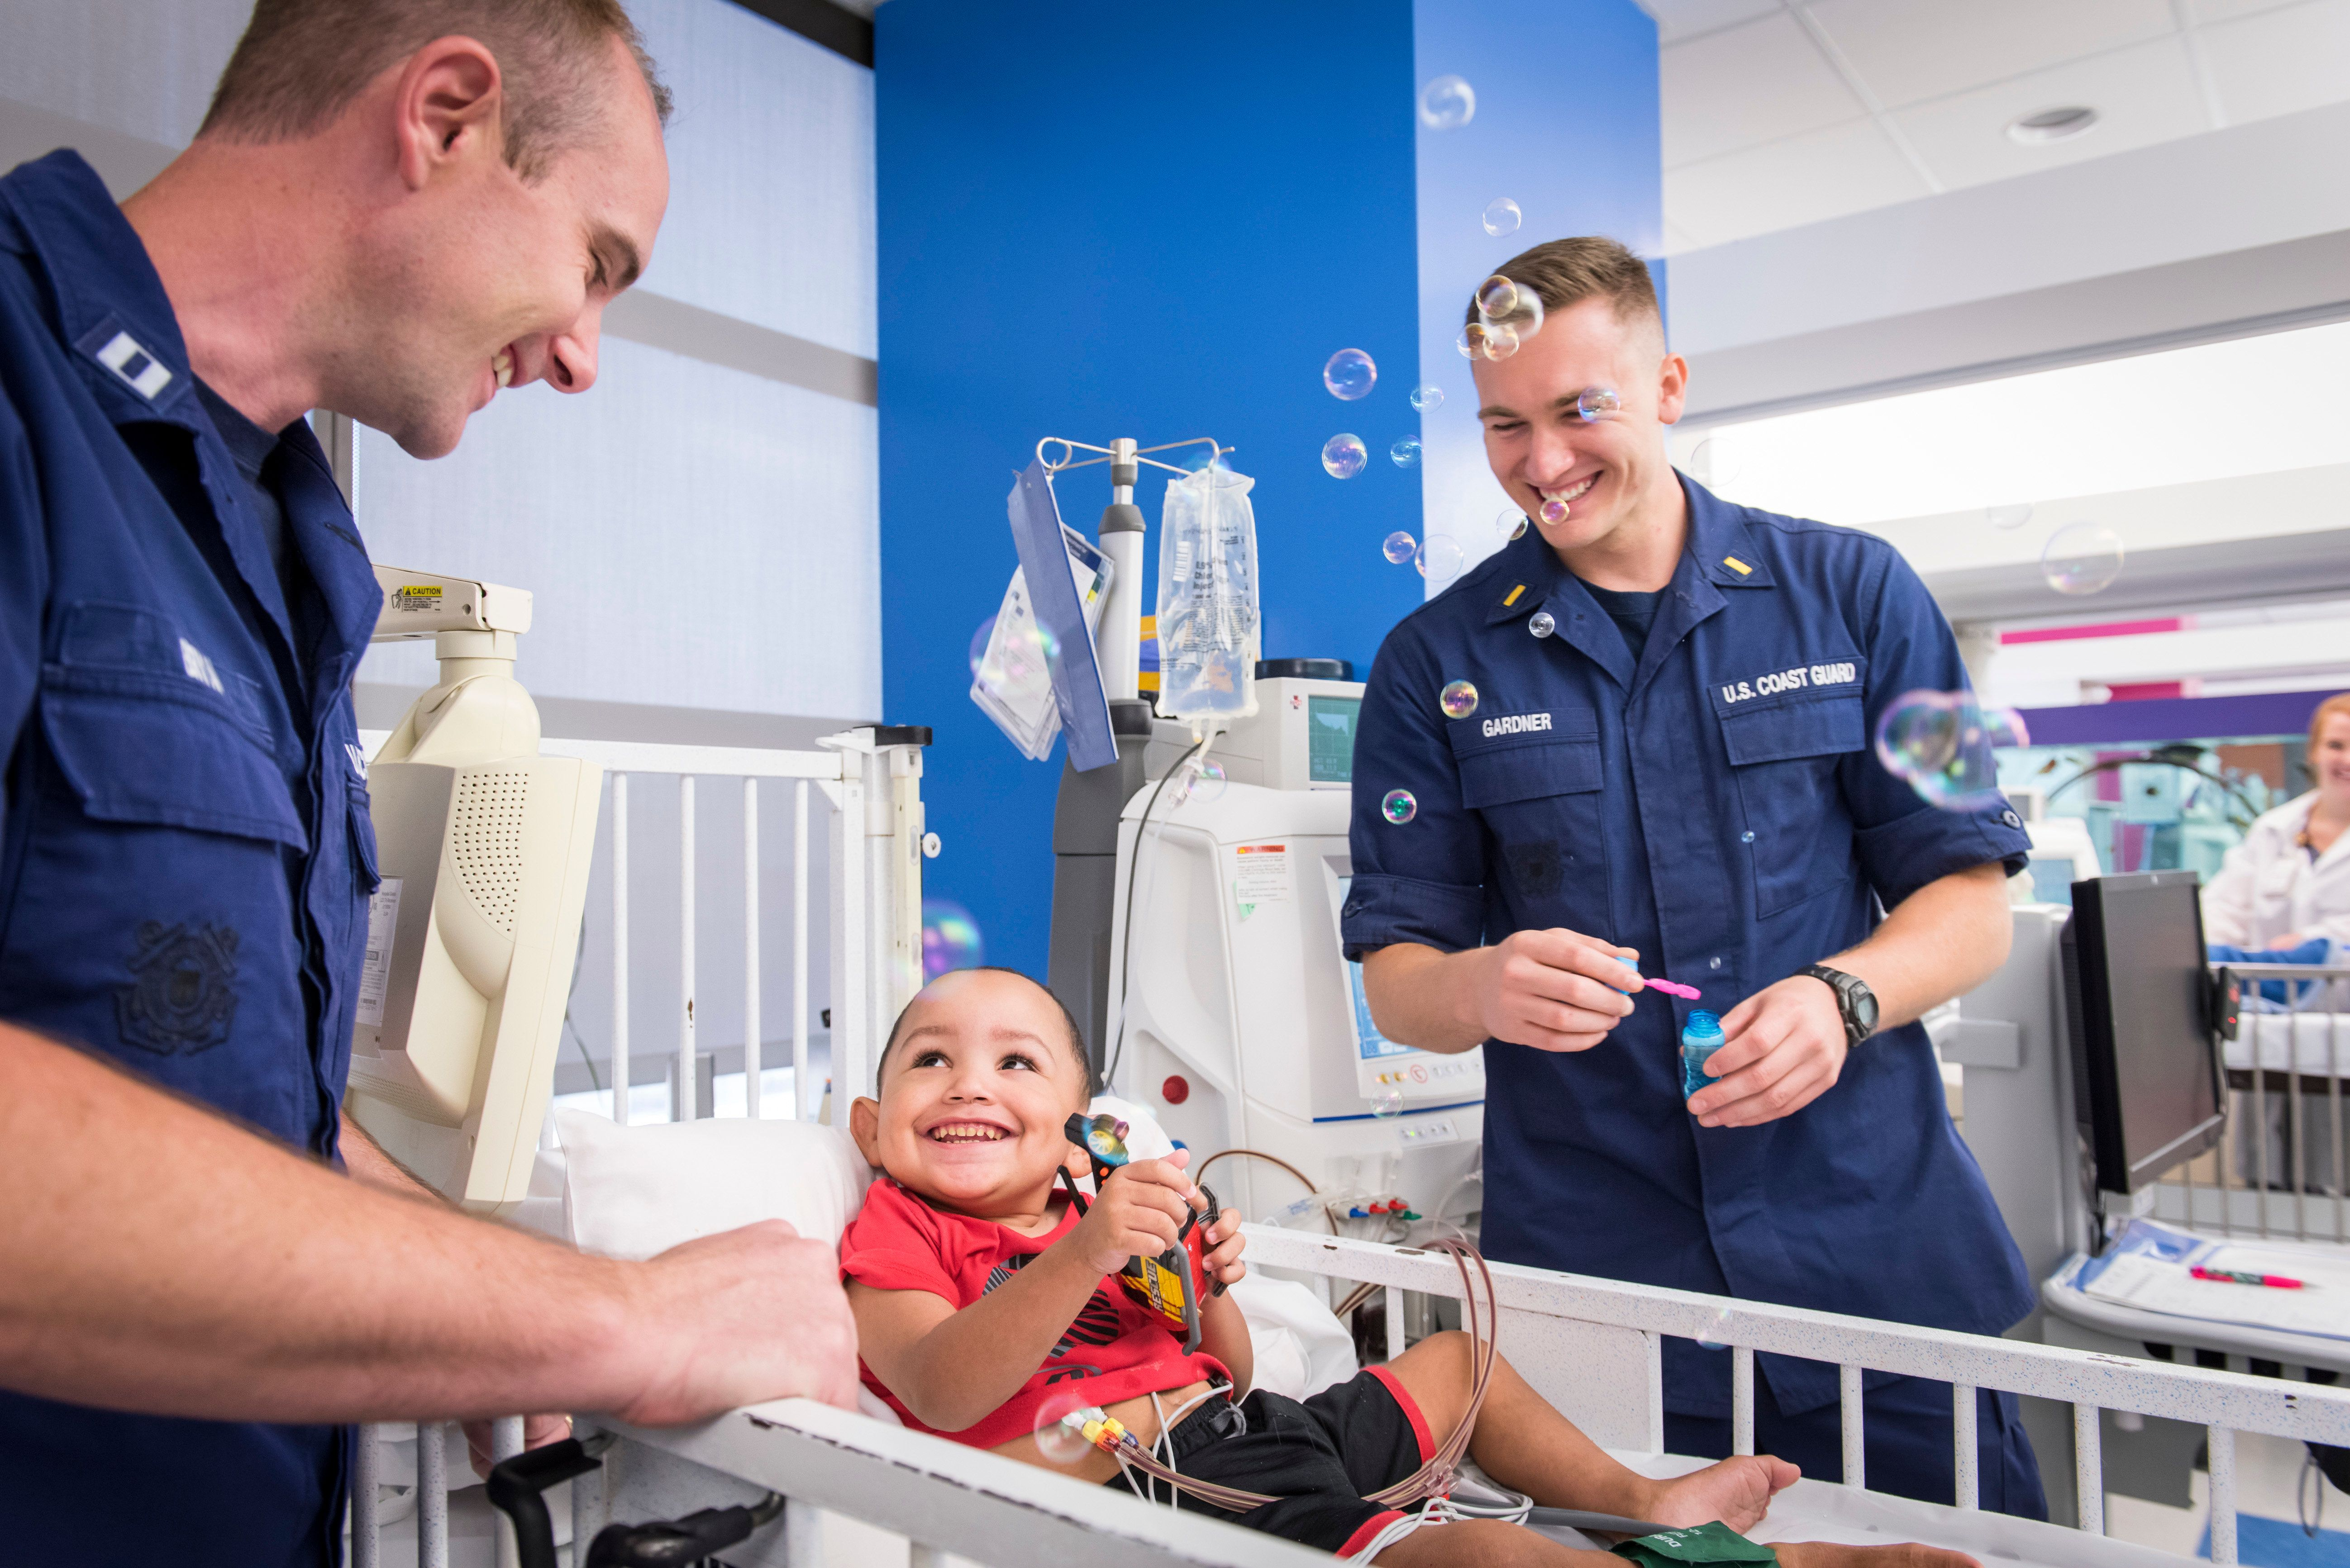 Coast Guard Lt. Brad Bryan (left) and Ensign James Gardner play with Zaiden Thomas, a dialysis patient who the two